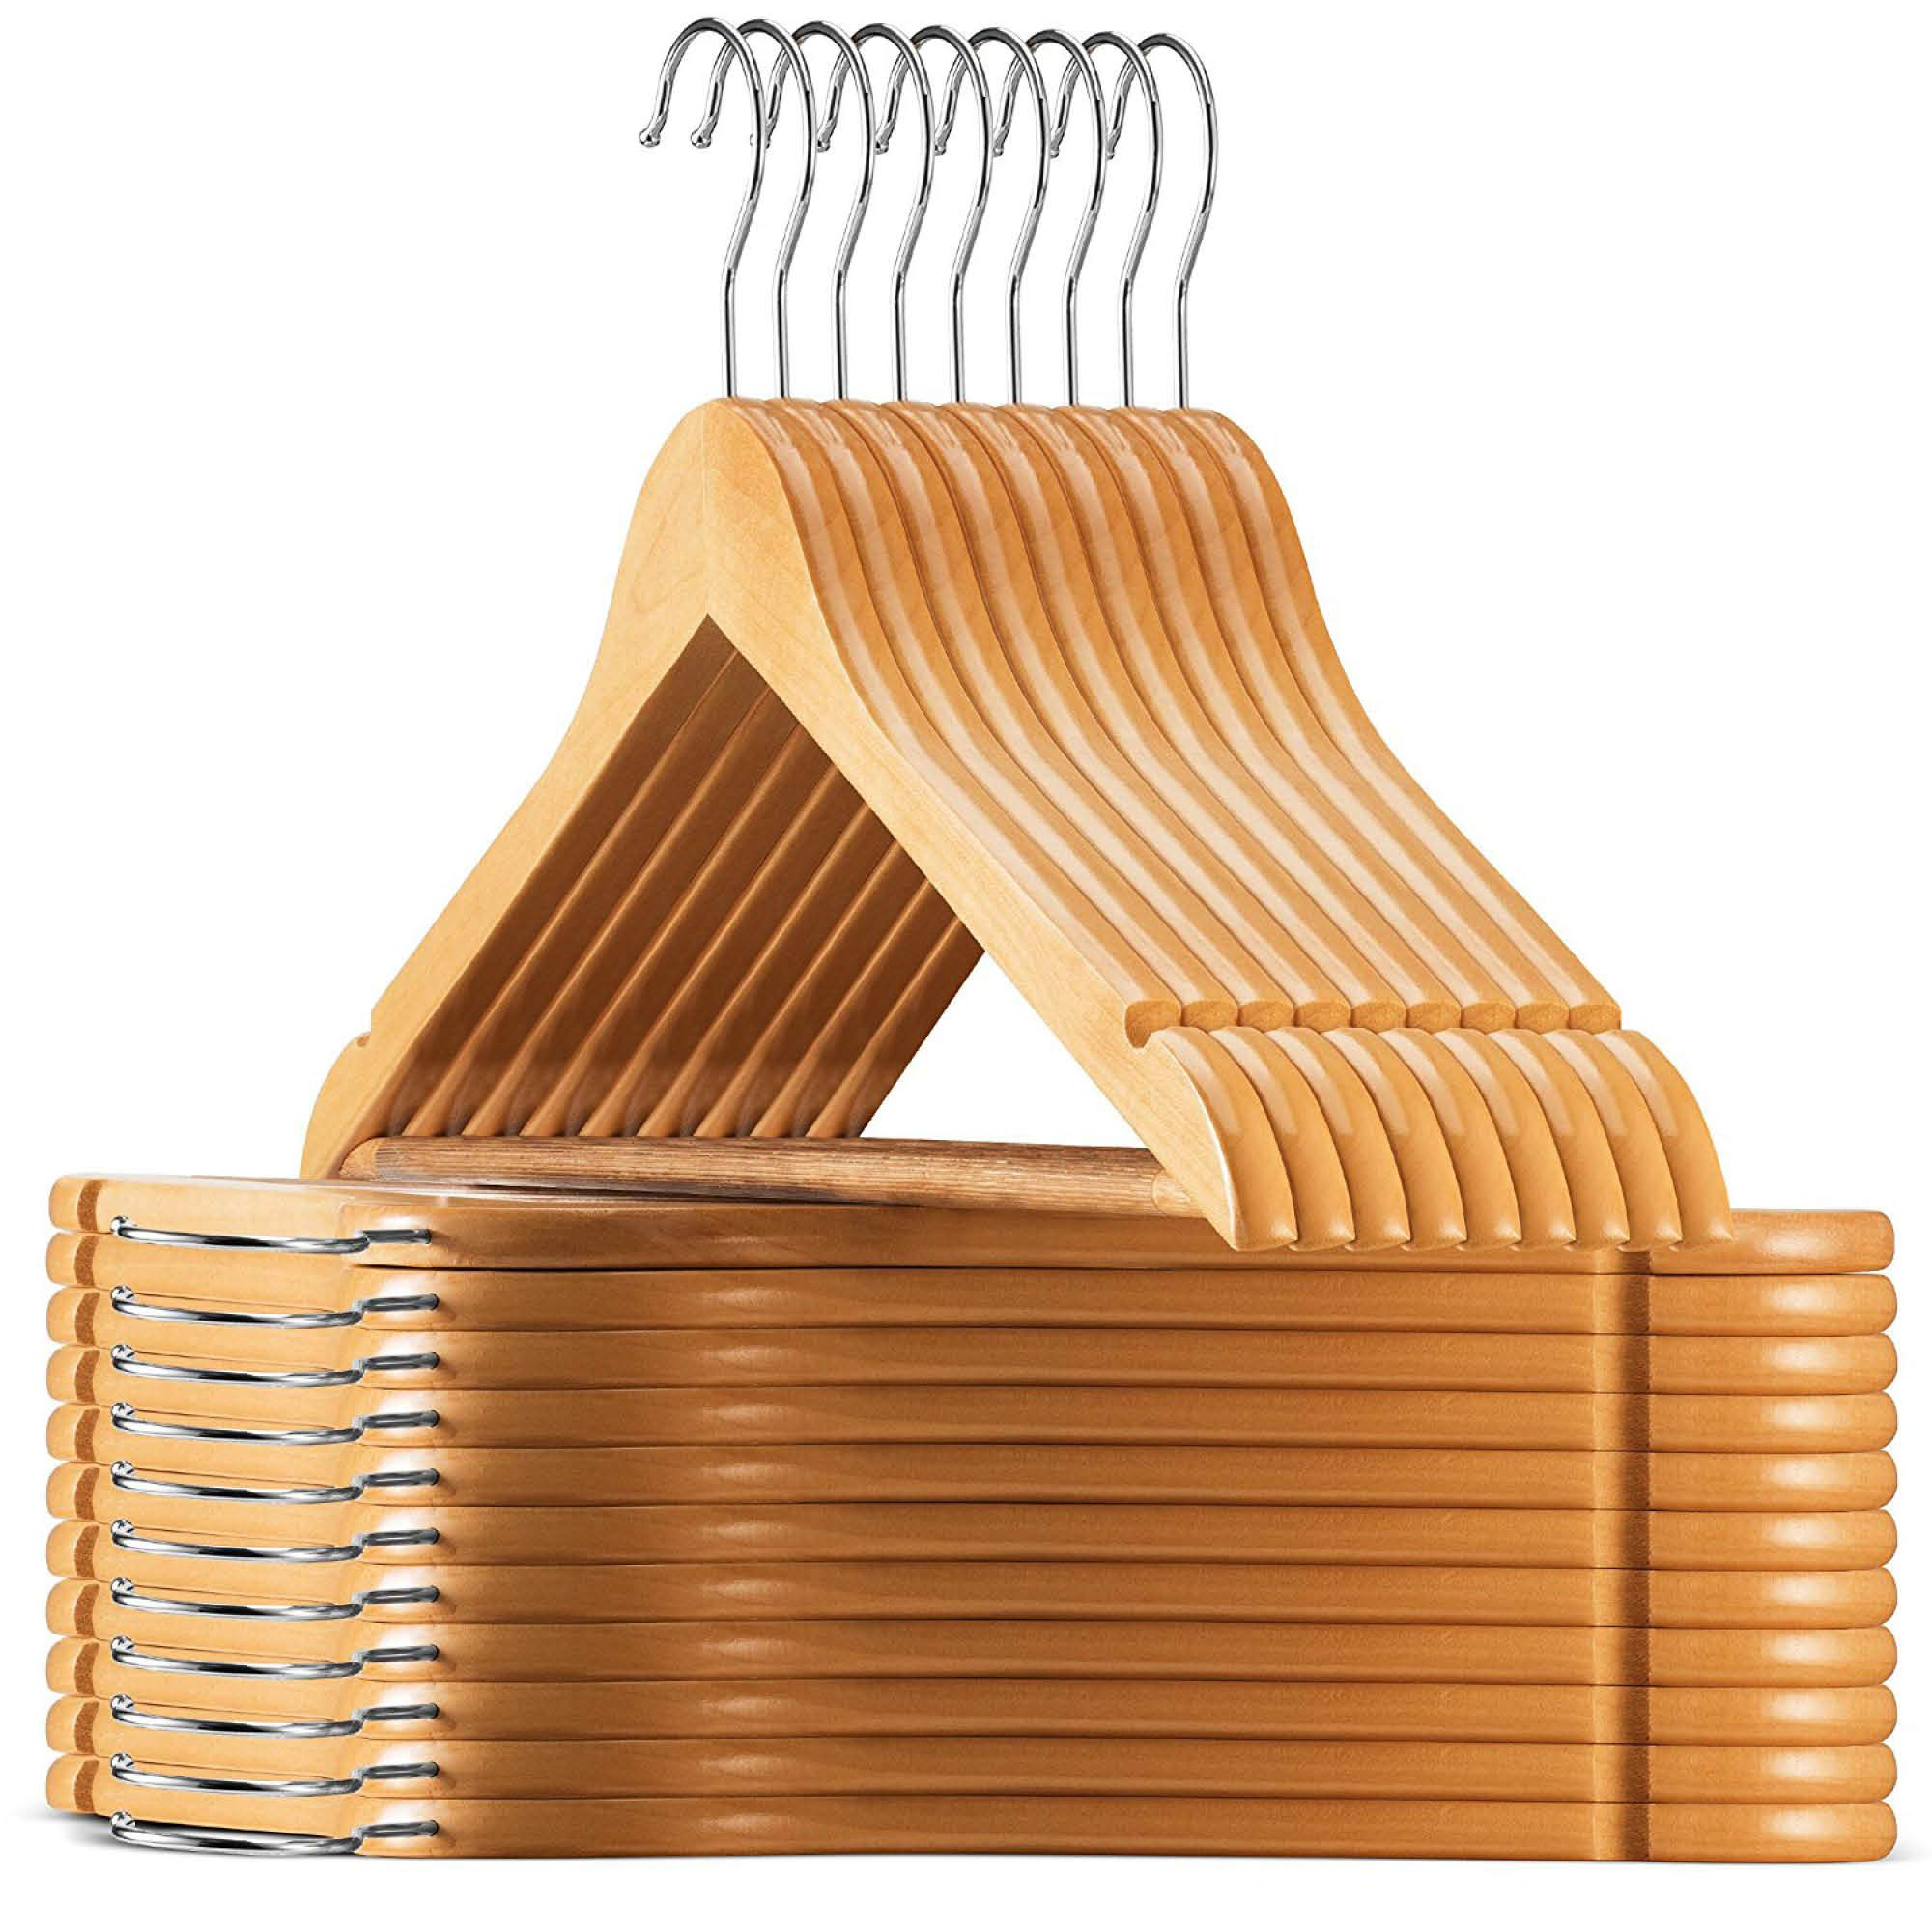 High-Grade Wooden Suit Hangers 30 Pack with Non Slip Pants Bar - Smooth Finish Solid Wood Coat Hanger with 360° Swivel Hook and Precisely Cut Notches for Camisole, Jacket, Pant, Dress Clothes Hangers